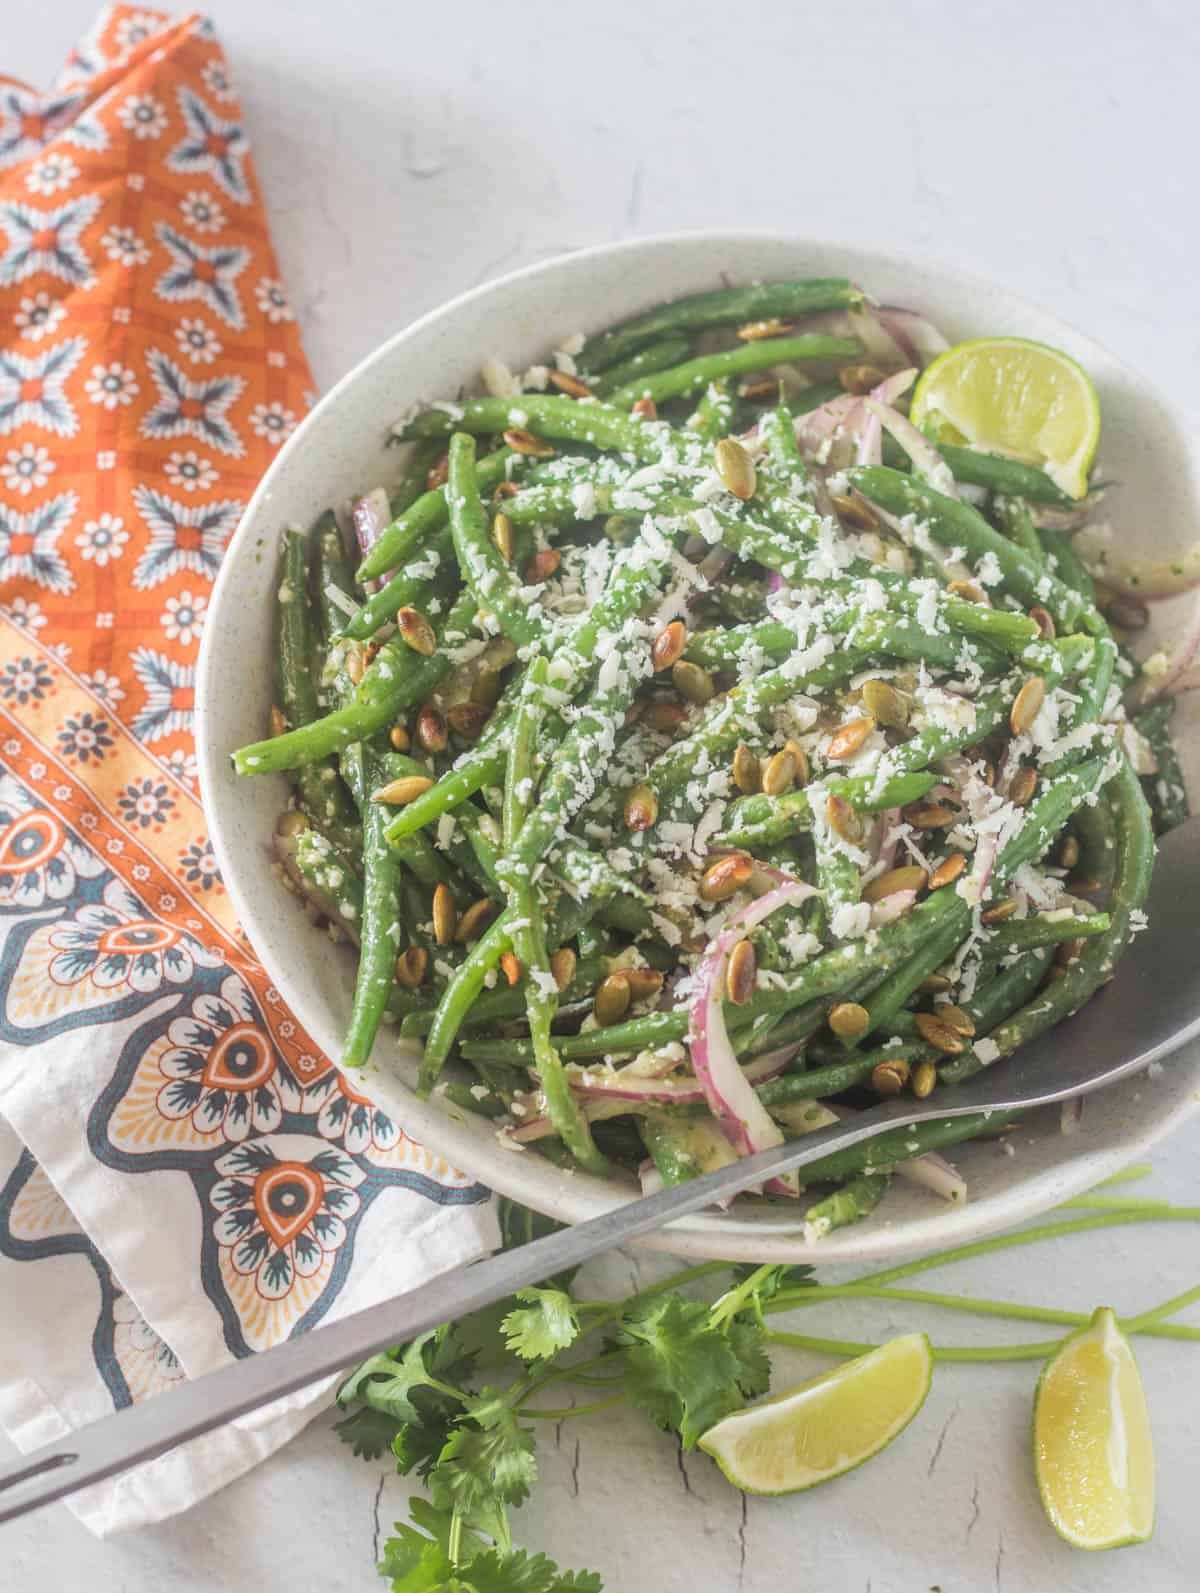 A white salad bowl of Mexican green beans salad with crumbled cotija, red onion, pepitas, and cilantro-lime dressing with a bright print napkin.